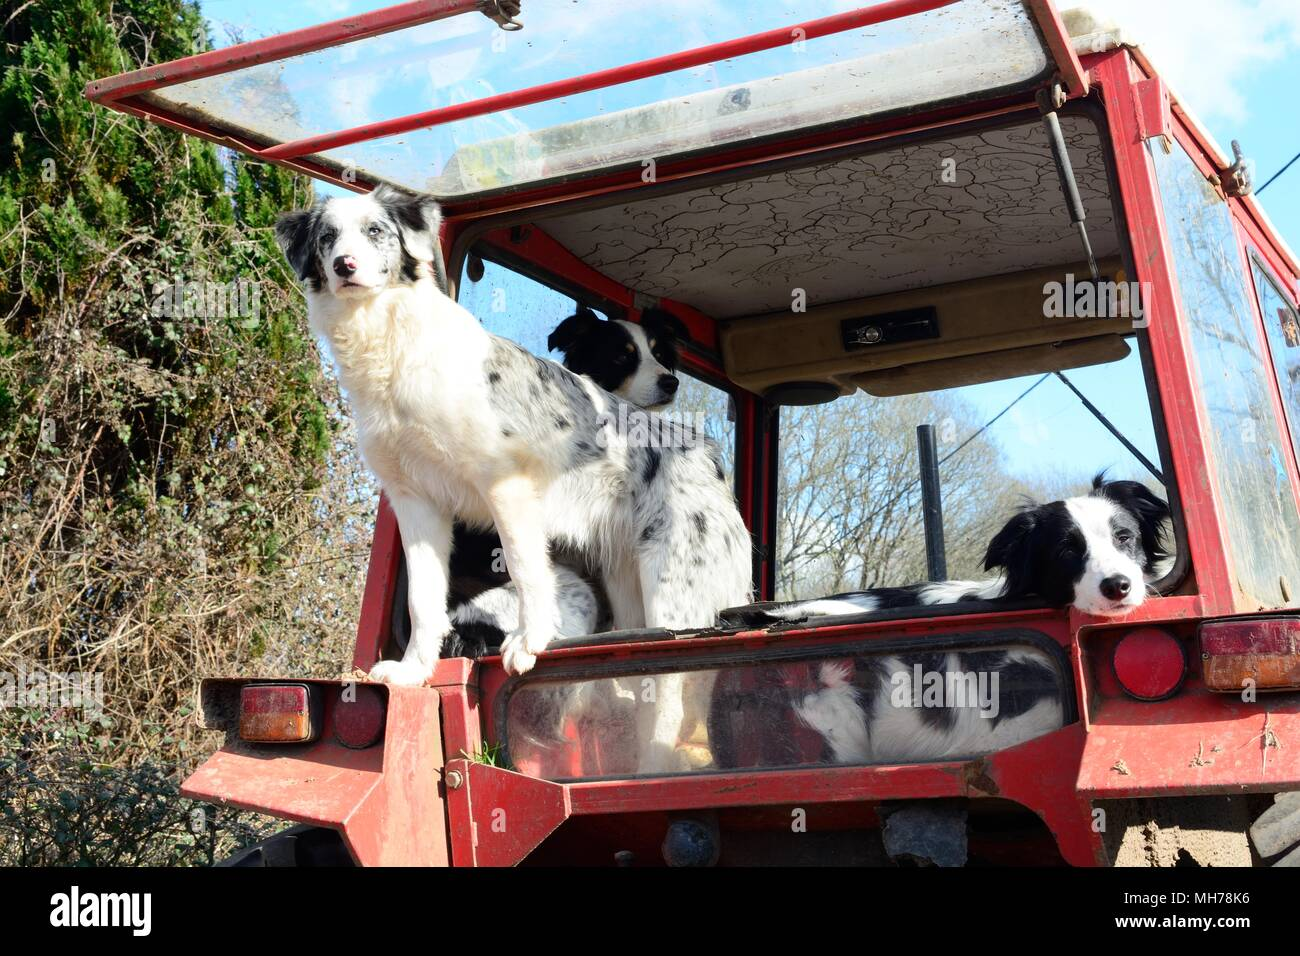 Three sheep dogs waiting patiently in the back of a tractor waiting for their master - Stock Image